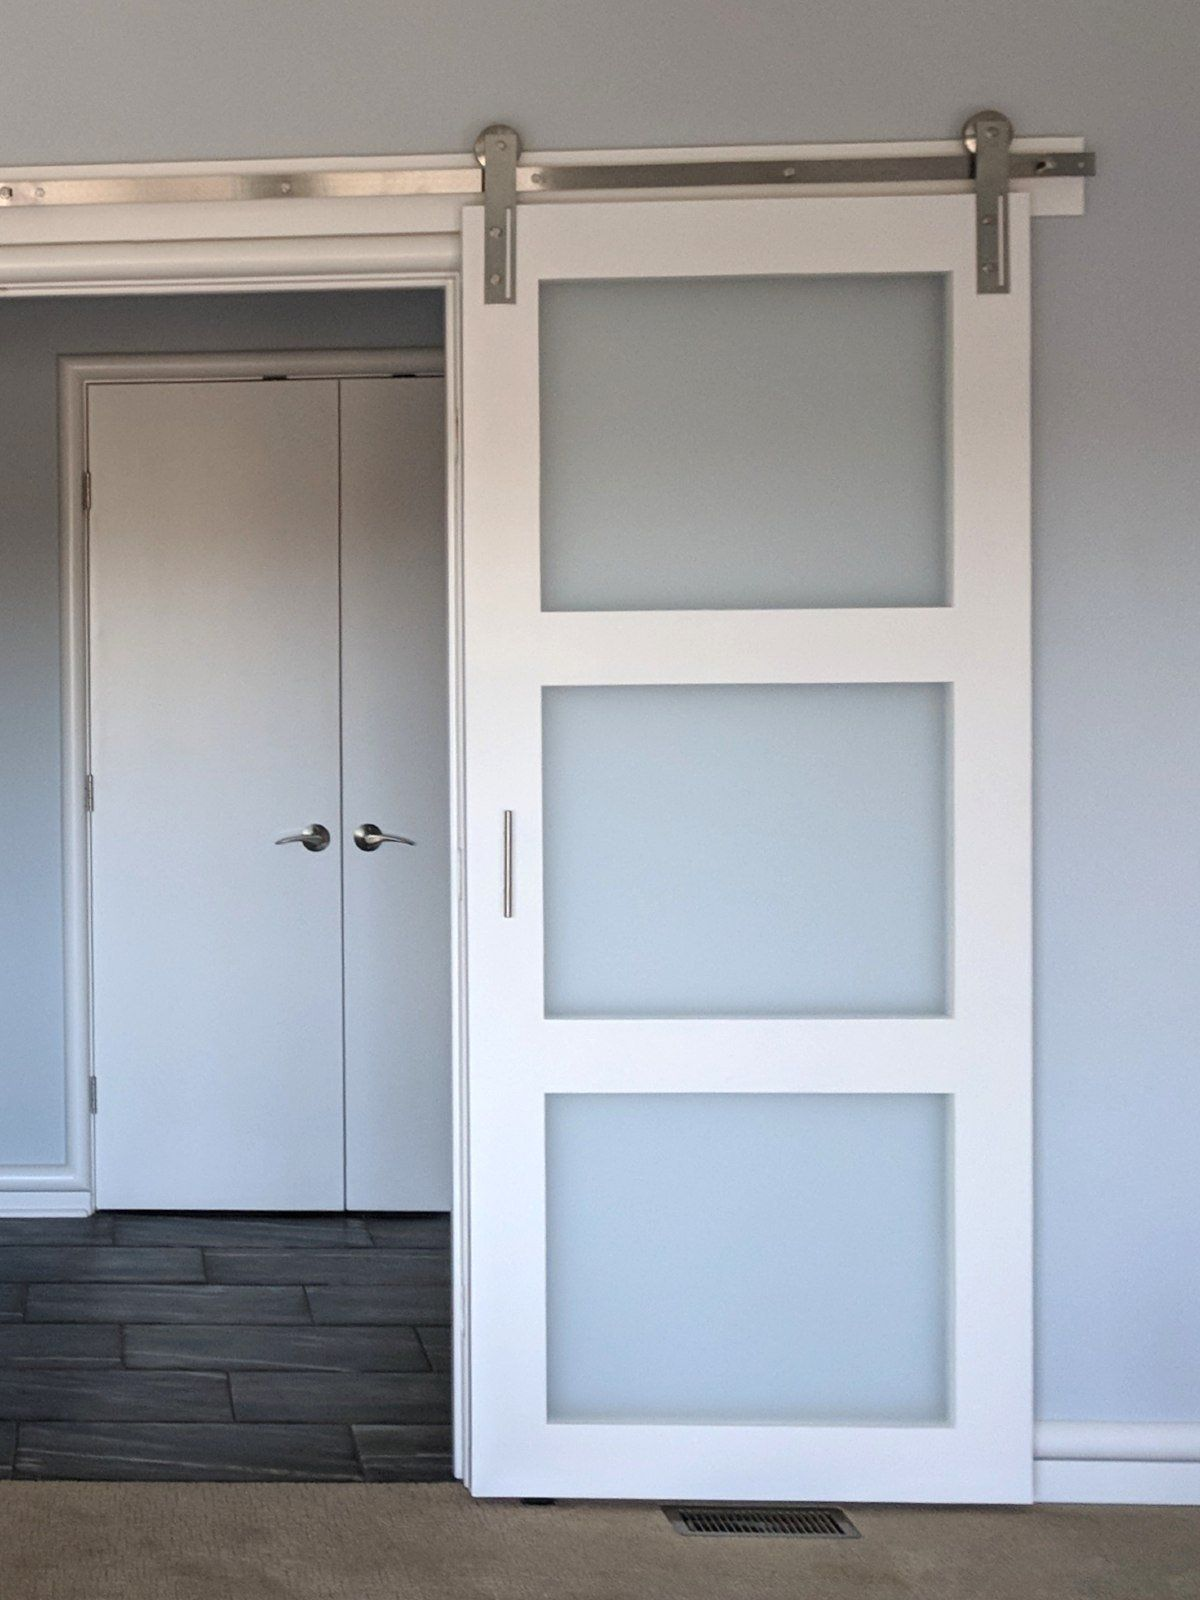 Hand Made And Painted Interior Sliding Glass Barn Door All Hardware Is Included In Price Fits A Stand Glass Barn Doors Garage Door Design Interior Barn Doors Sliding glass barn doors interior